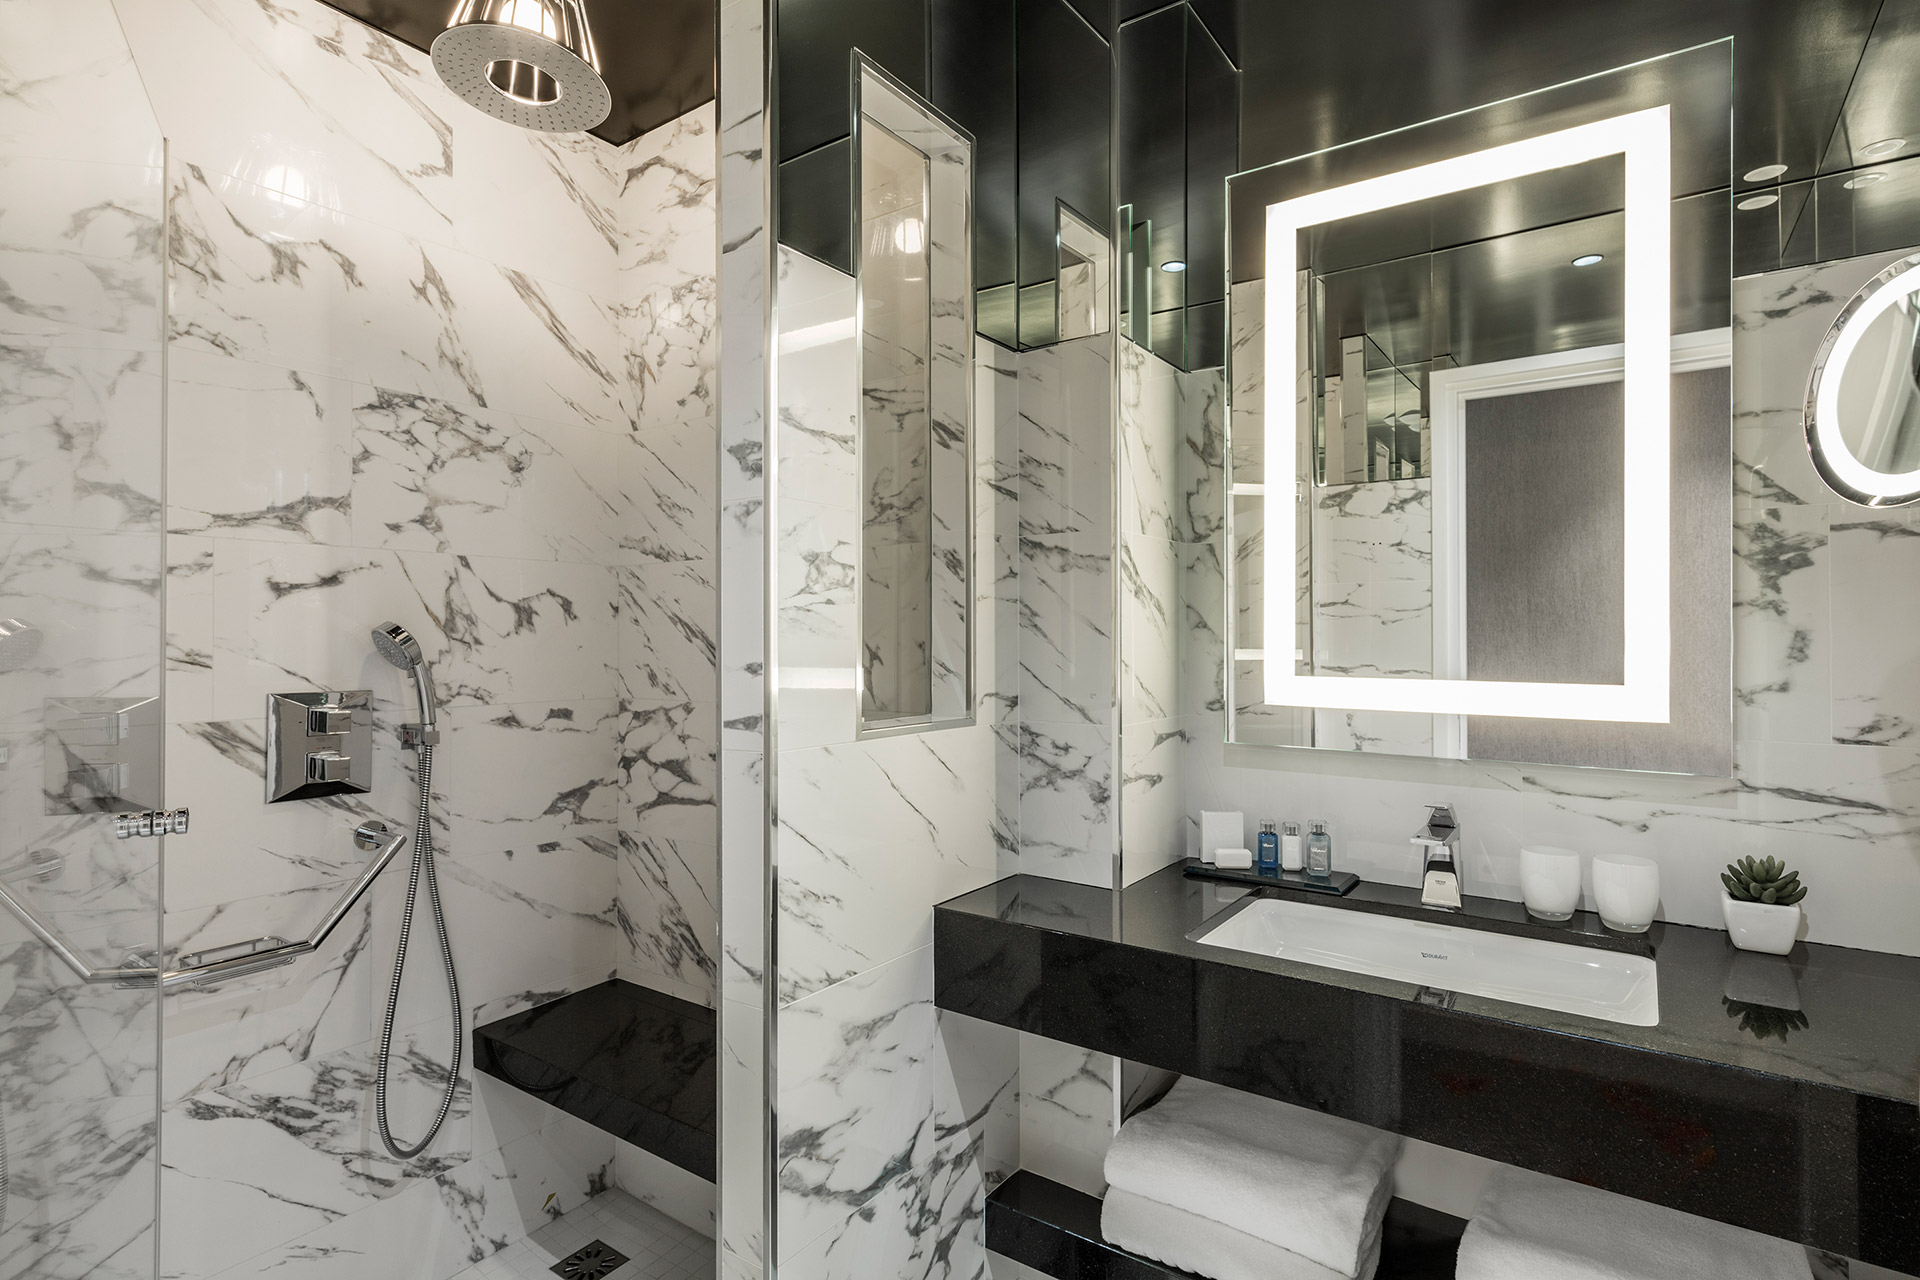 Maison Albar Hotels Le Diamond bathroom Junior Suite